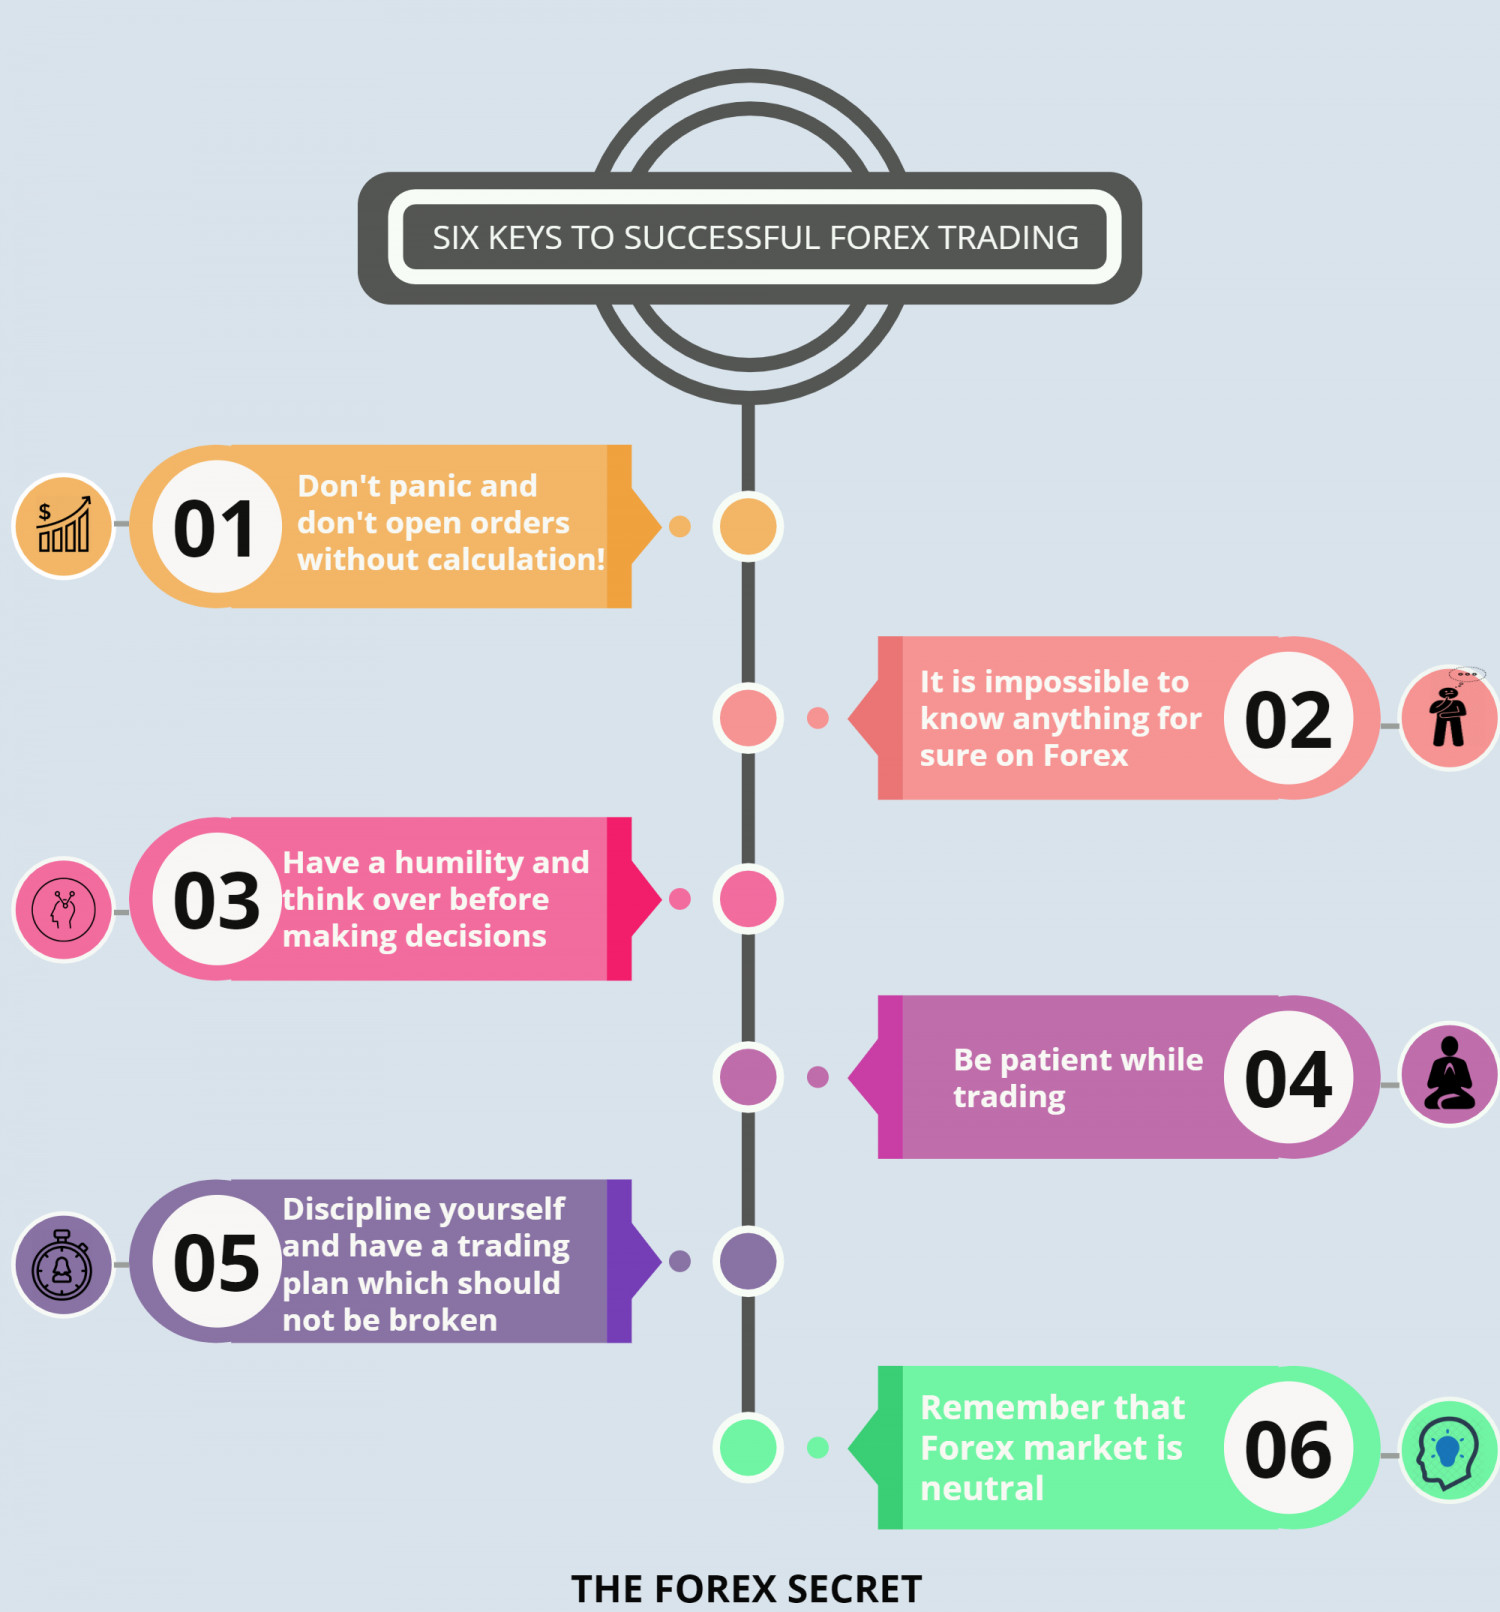 SIX KEYS TO SUCCESSFUL FOREX TRADING Infographic